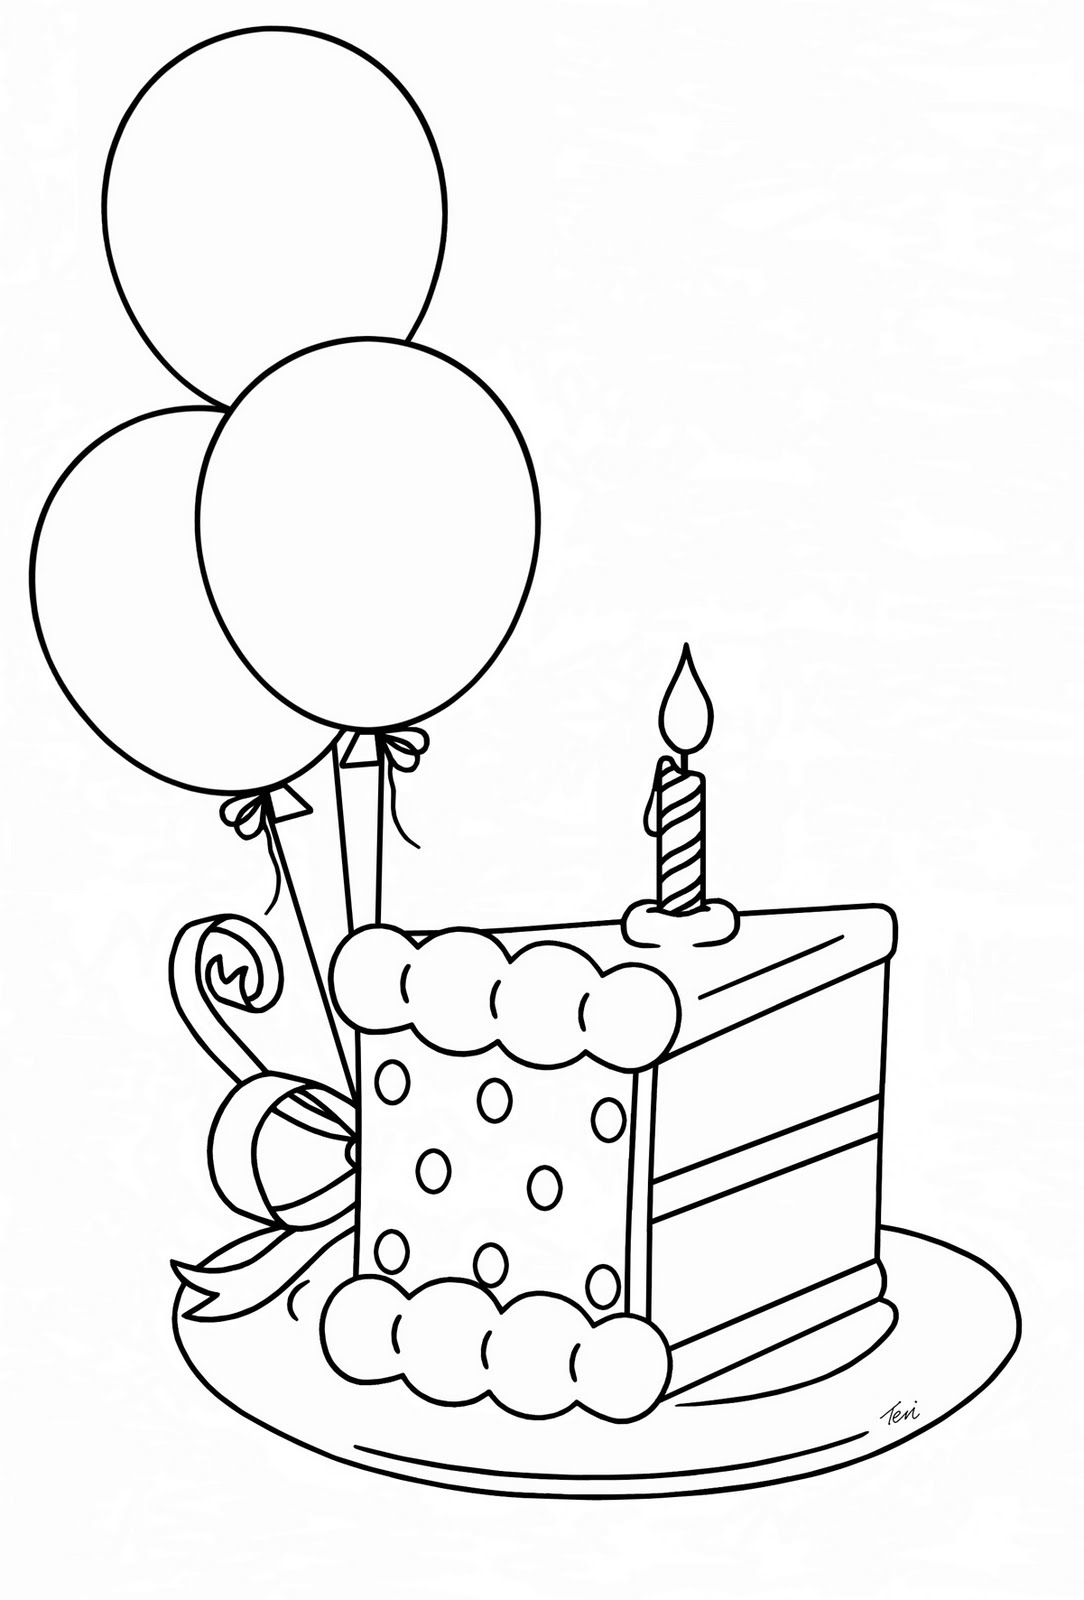 1084x1600 Birthday Cake Slice Drawing Images And Clip Art Cakes